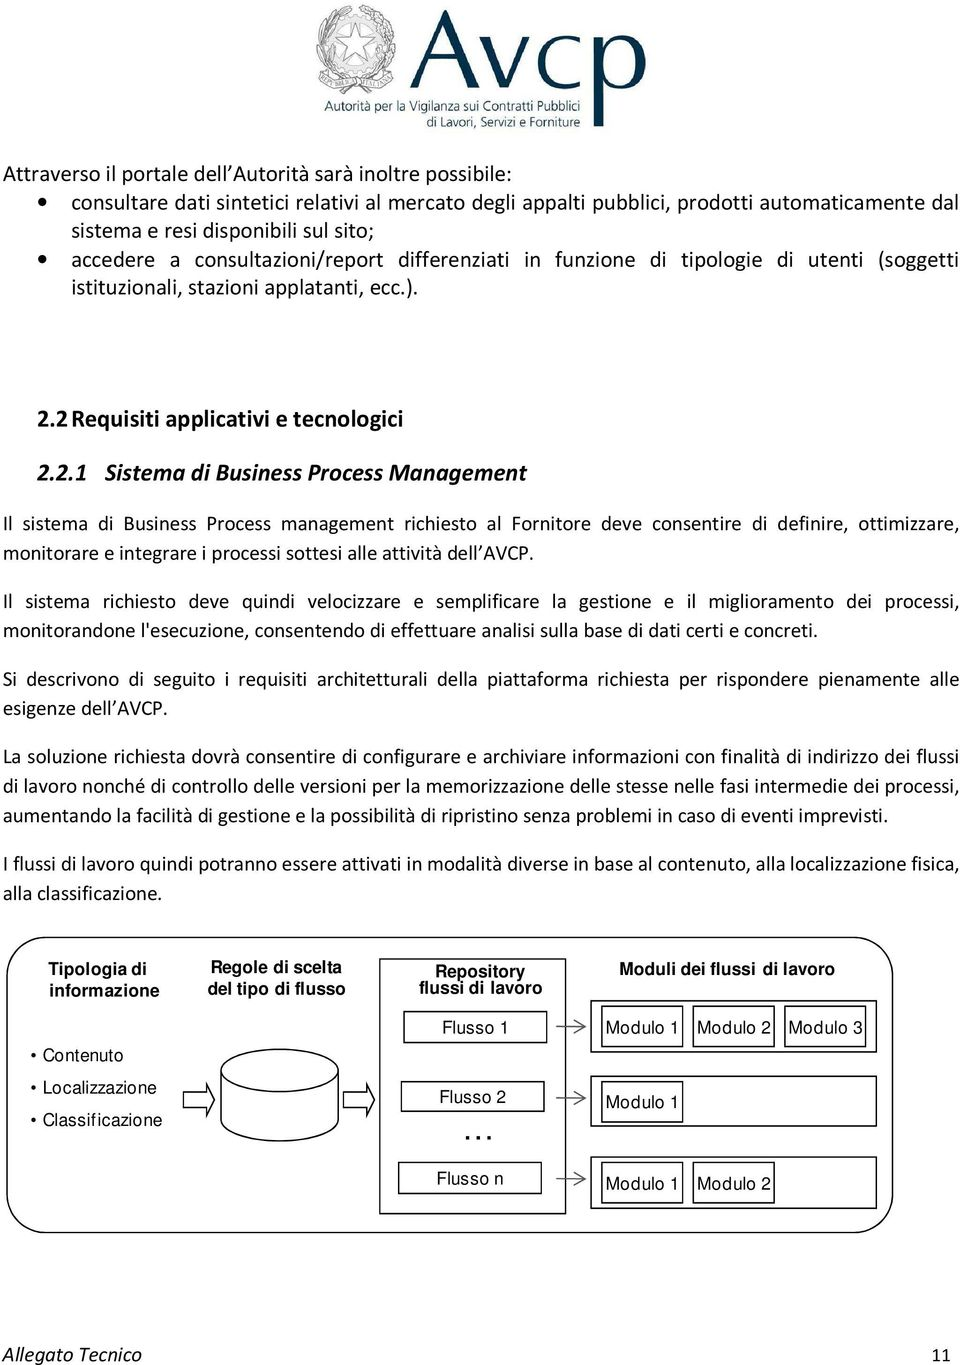 2 Requisiti applicativi e tecnologici 2.2.1 Sistema di Business Process Management Il sistema di Business Process management richiesto al Fornitore deve consentire di definire, ottimizzare,